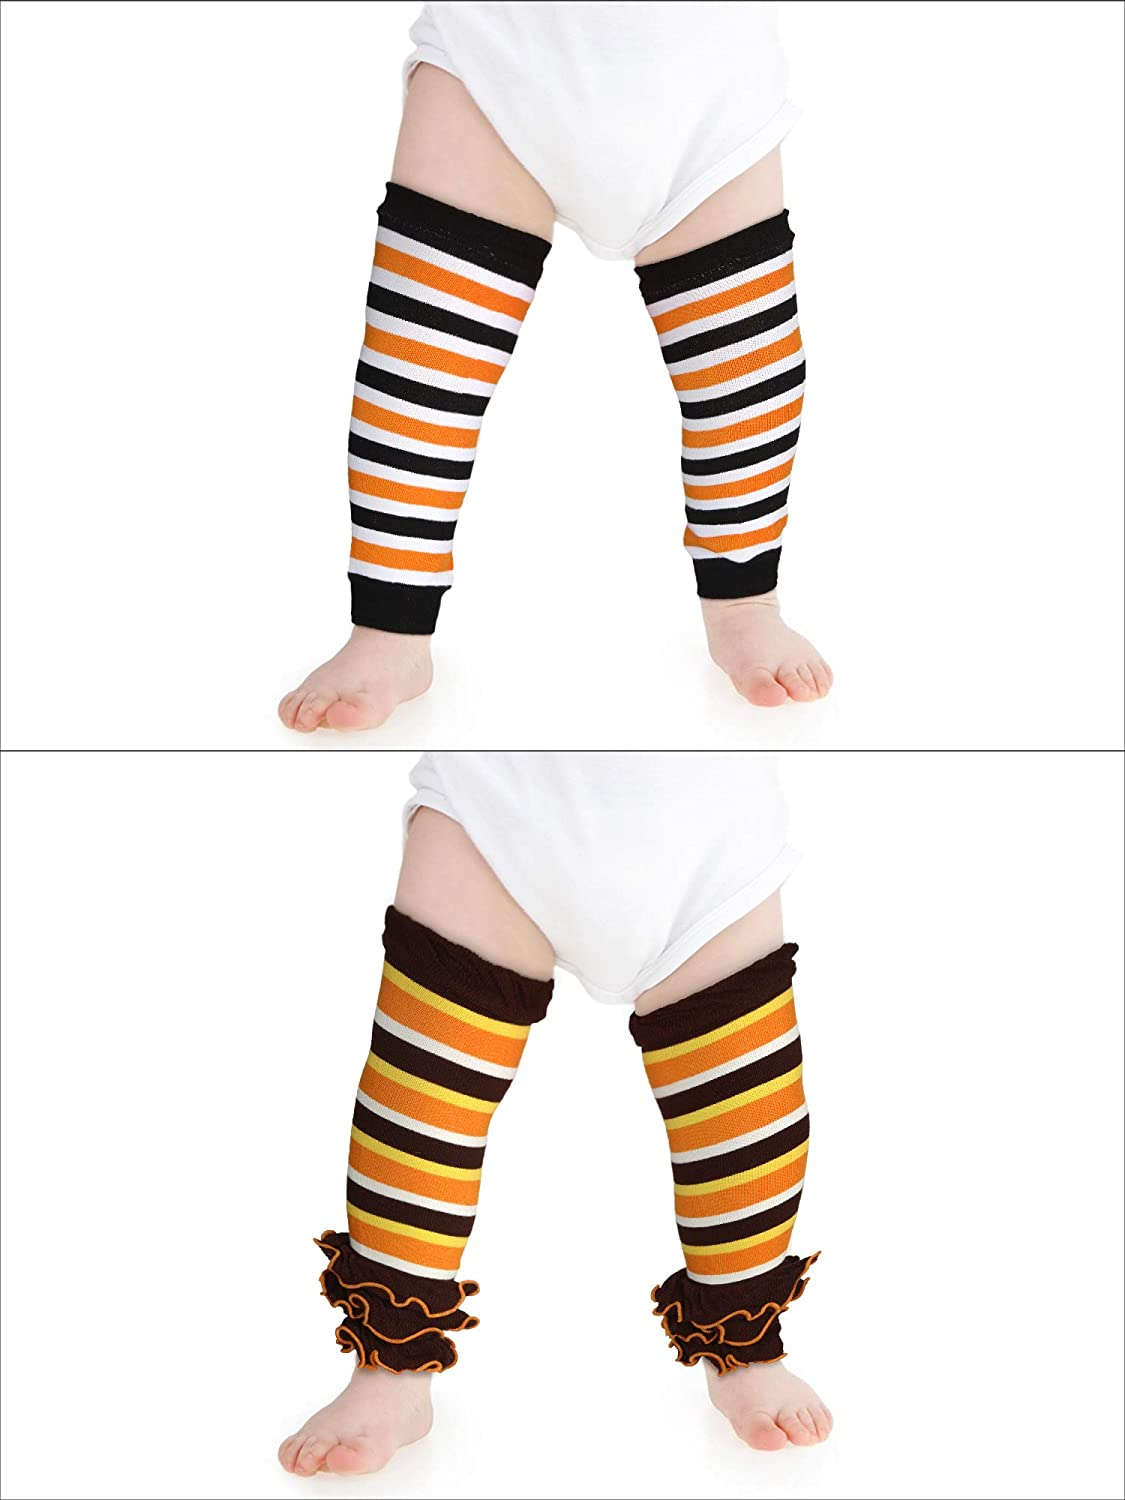 SATINIOR 2 Paar Halloween Thanksgiving Baby Kleinkind Beinlinge Gestreifte Beinlinge